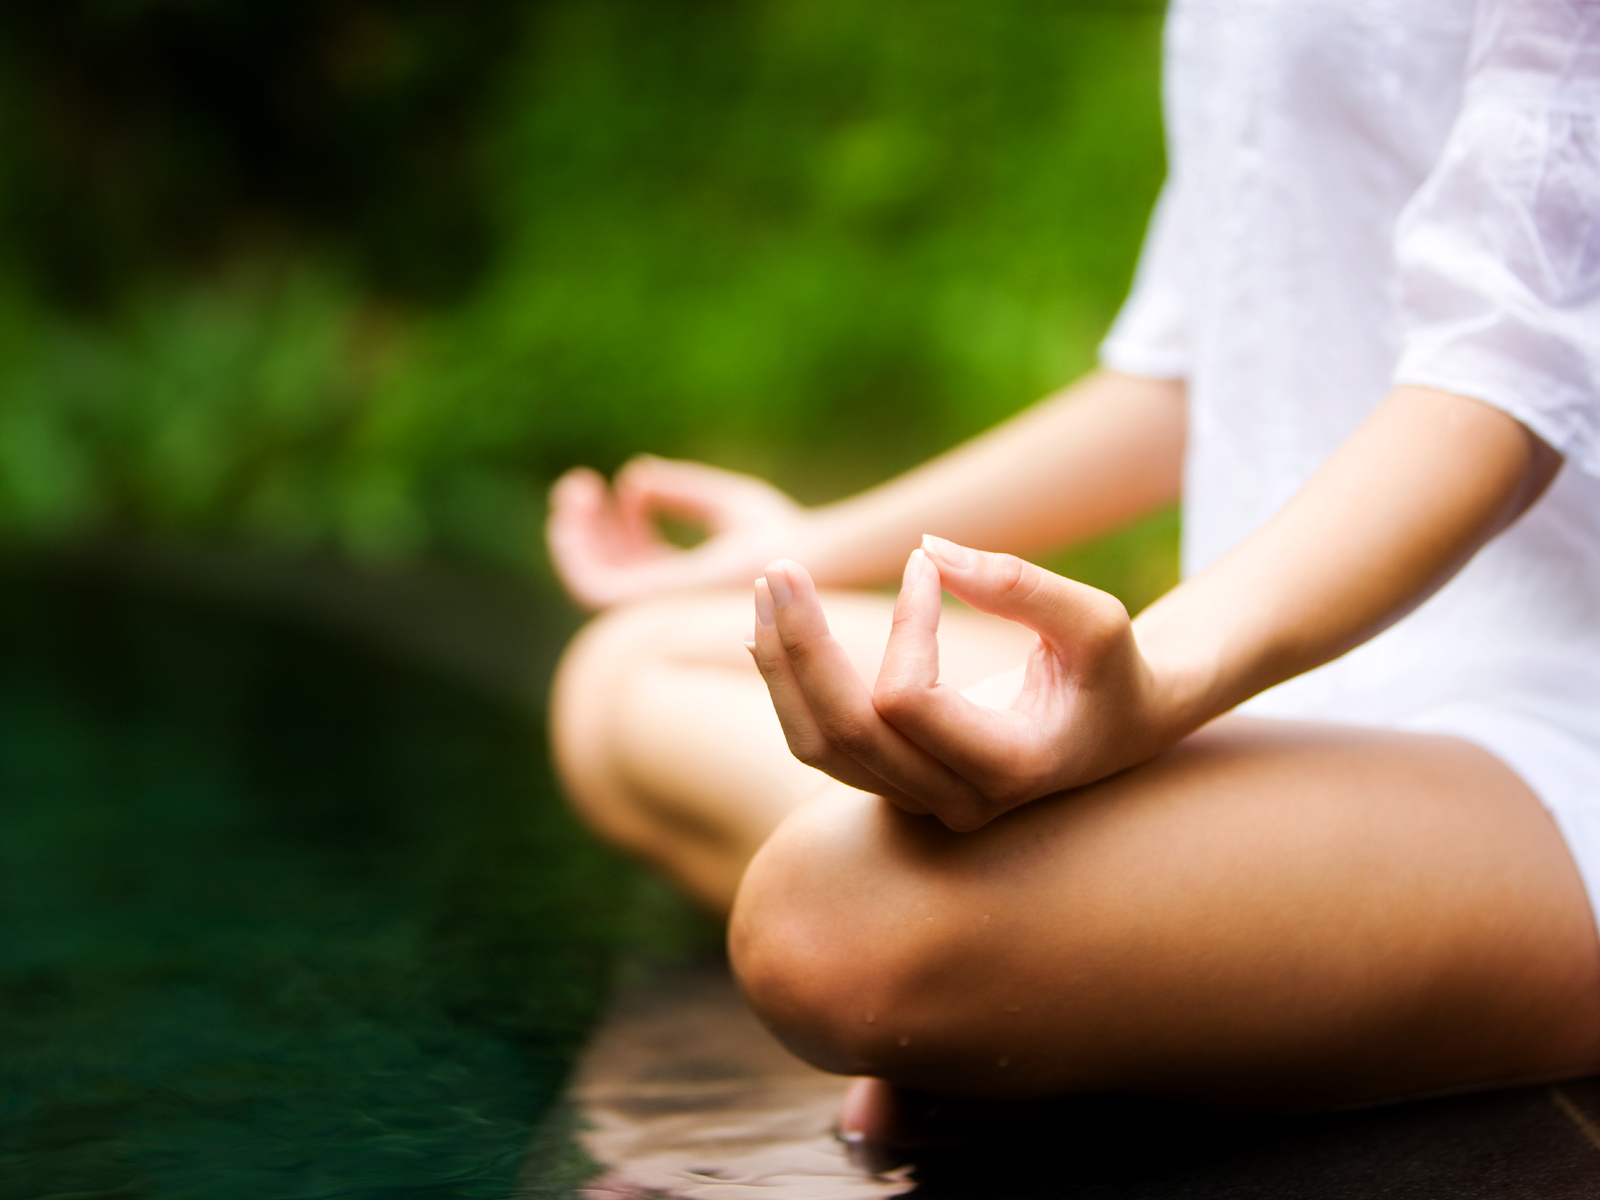 Meditate to Bring Your Mind